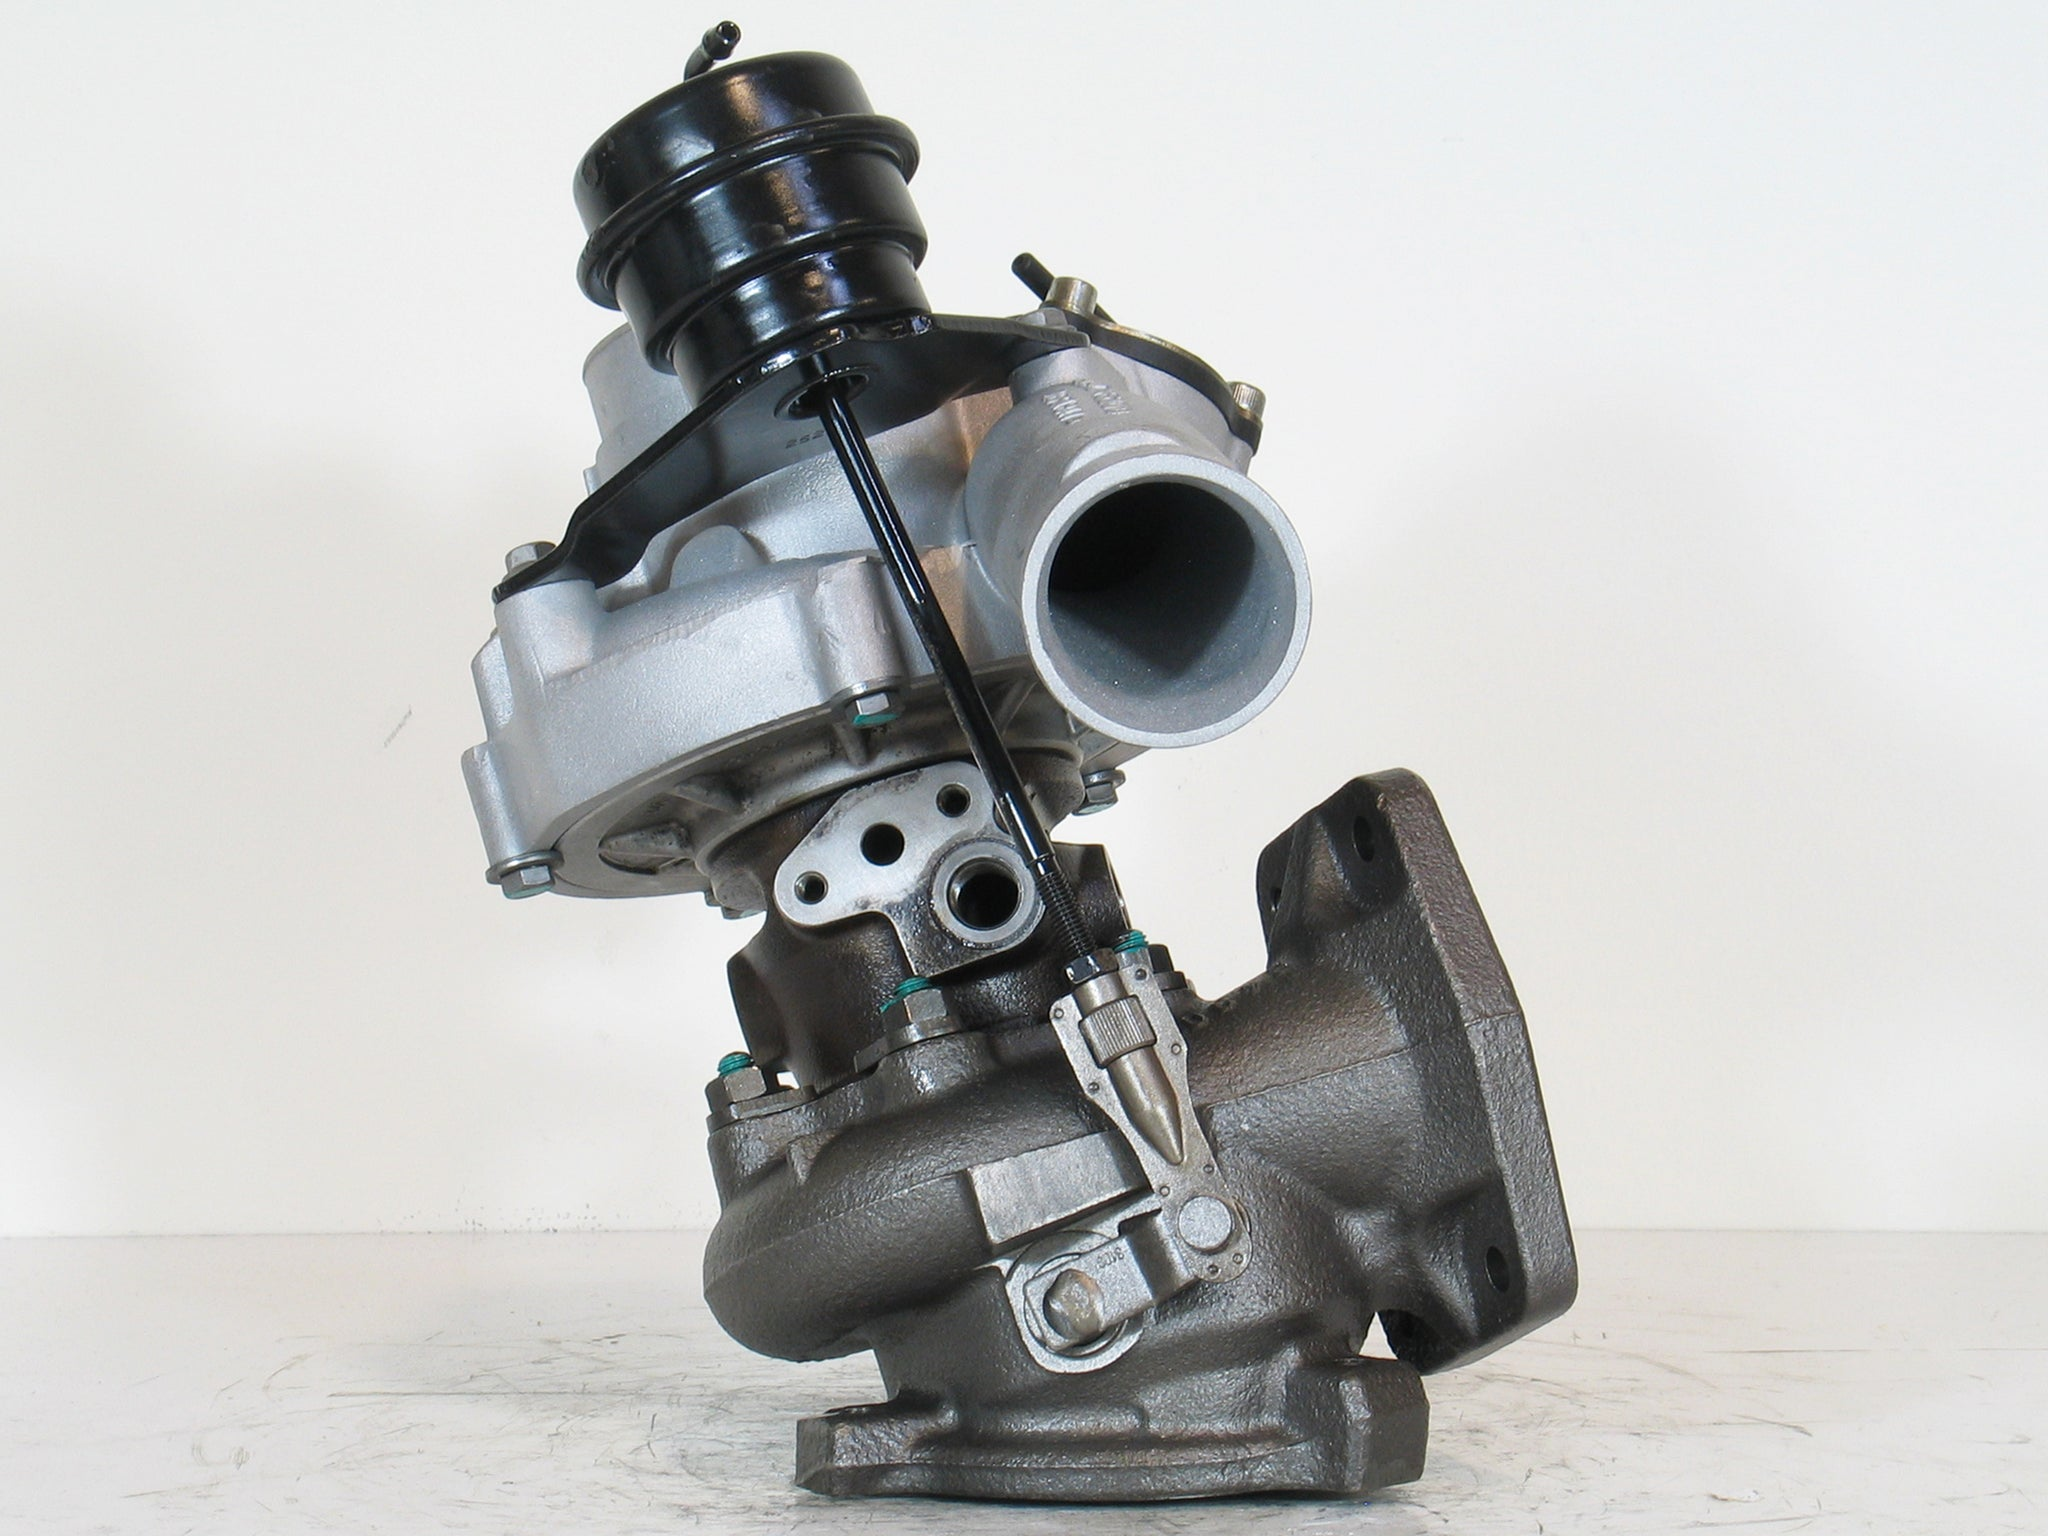 K24 Turbo Volvo S60 V70 T5 RN2P24HT 2.4L Engine 30650636 30757114 53249887401